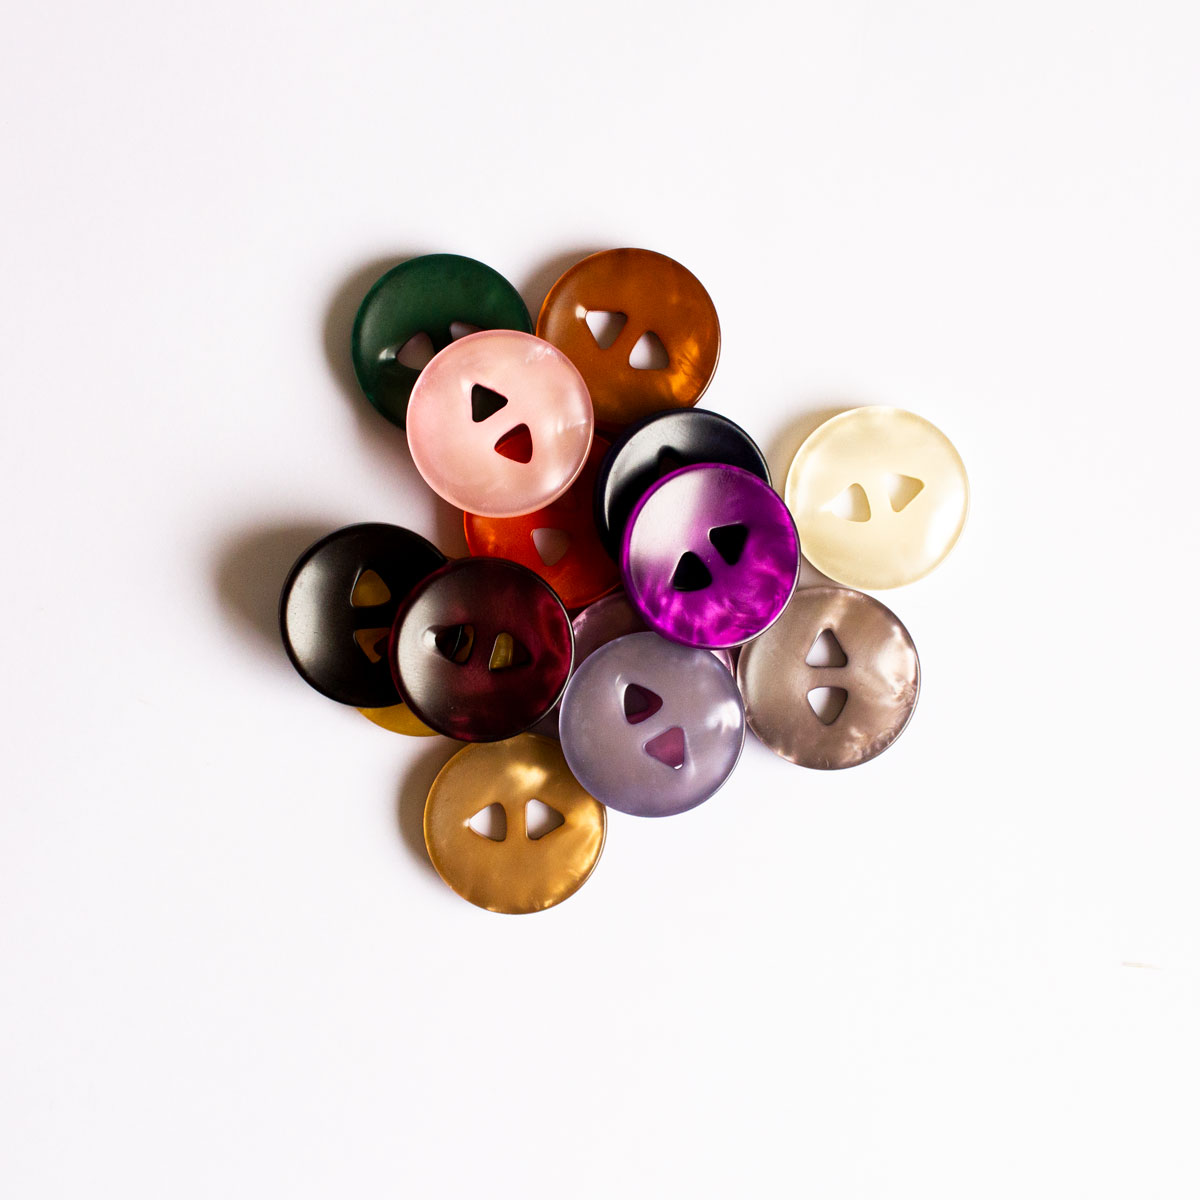 2 HOLE BUTTON W/ MOTHER OF PEARL LOOK